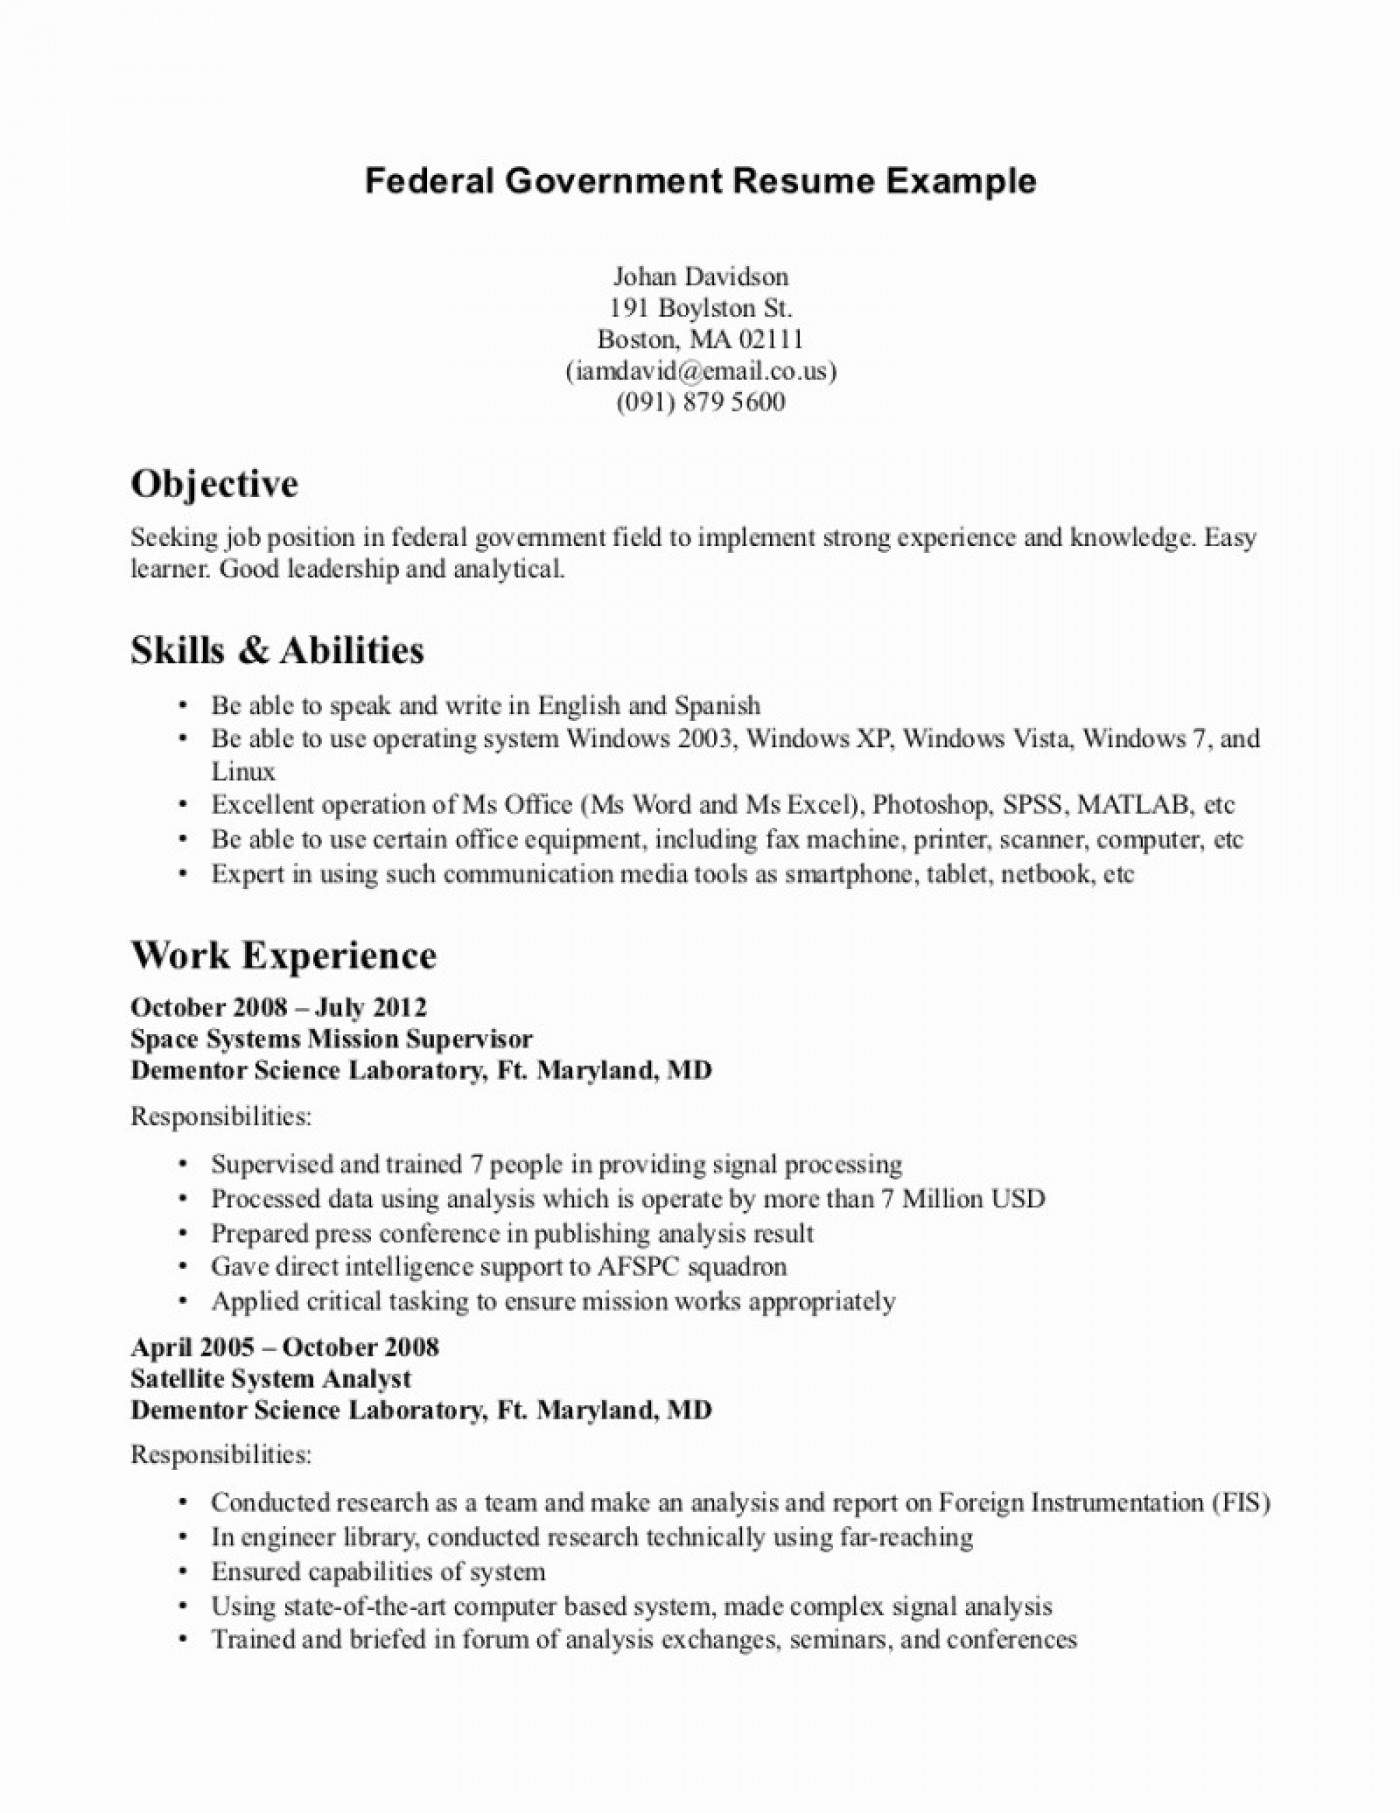 essay example global warming persuasive poemsrom co essays on